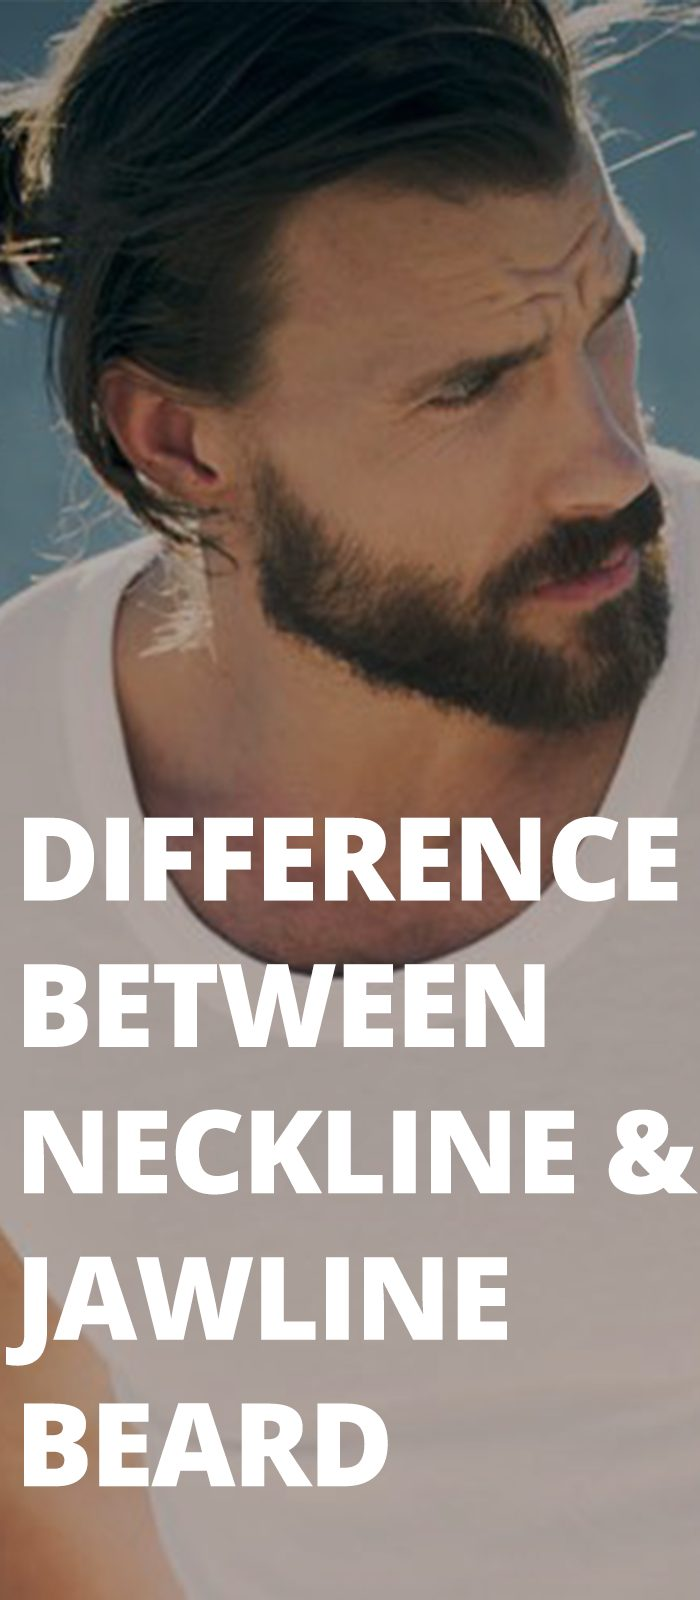 Difference Between Neckline & Jawline Beard